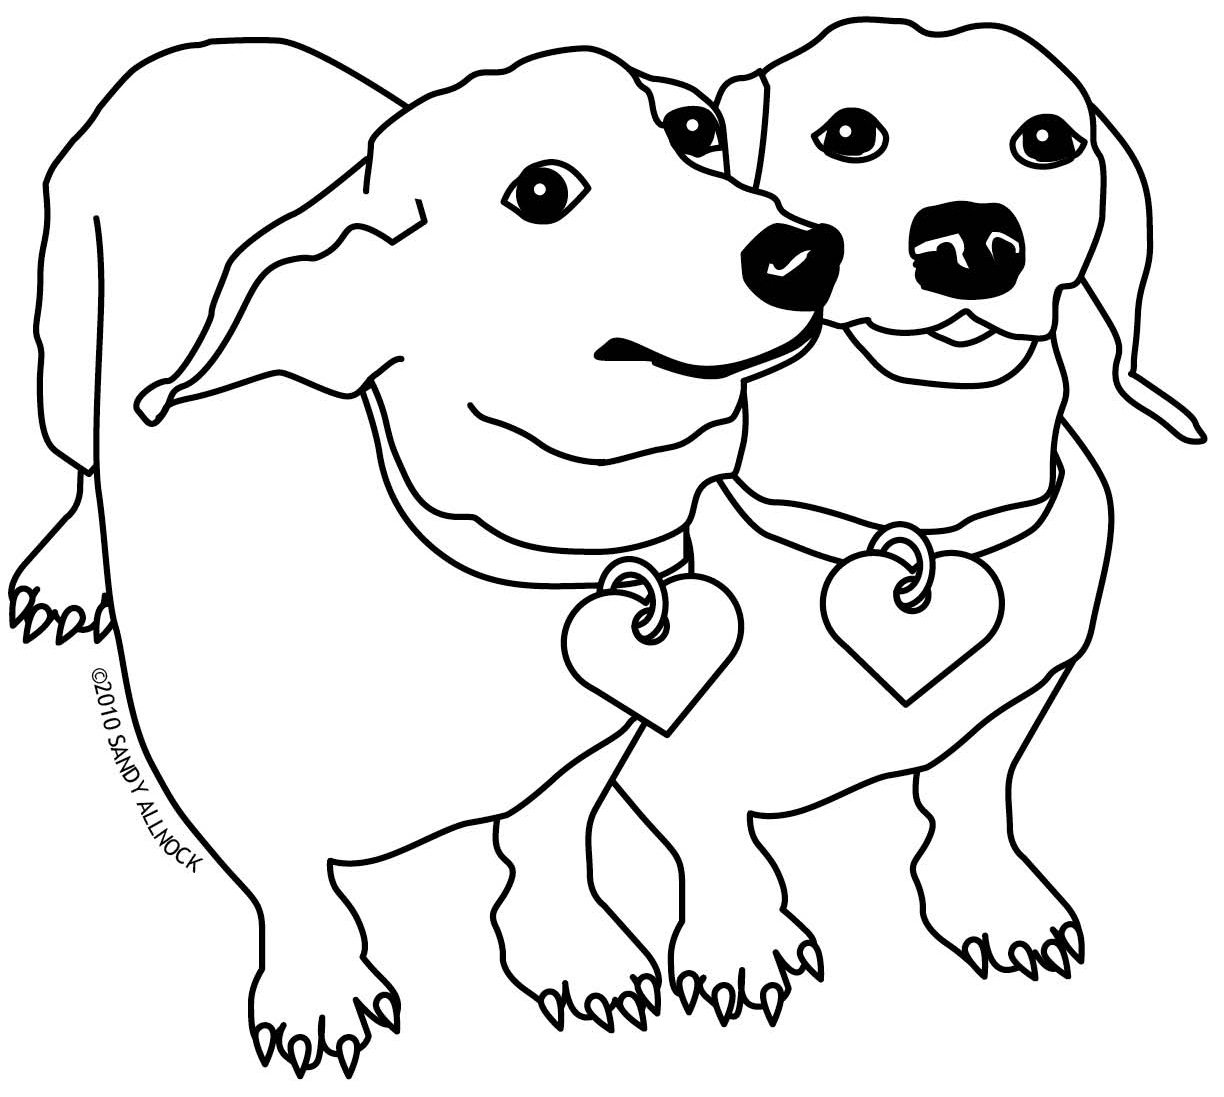 Dachshund coloring #16, Download drawings